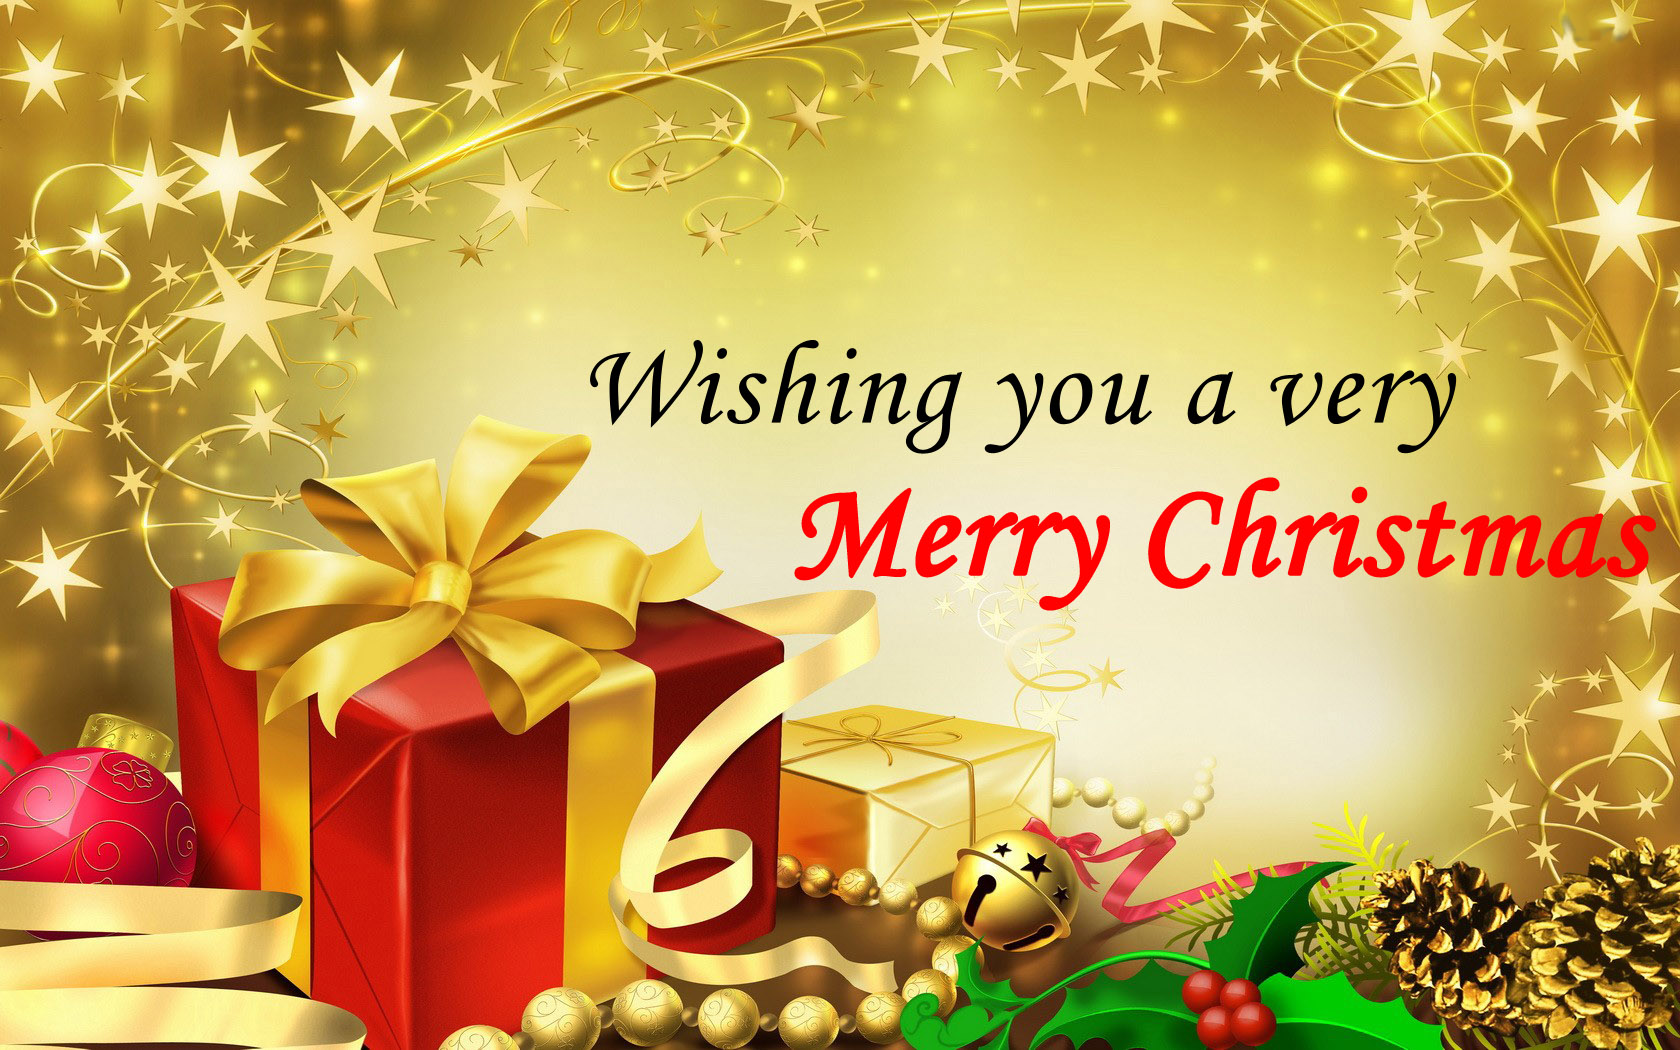 Unique New Year Greetings Greetings Card Wallpaper N New Year Greetings Card Happy New Year 2015 Merry New Year Greetings Quotes inspiration Christmas And New Year Greetings